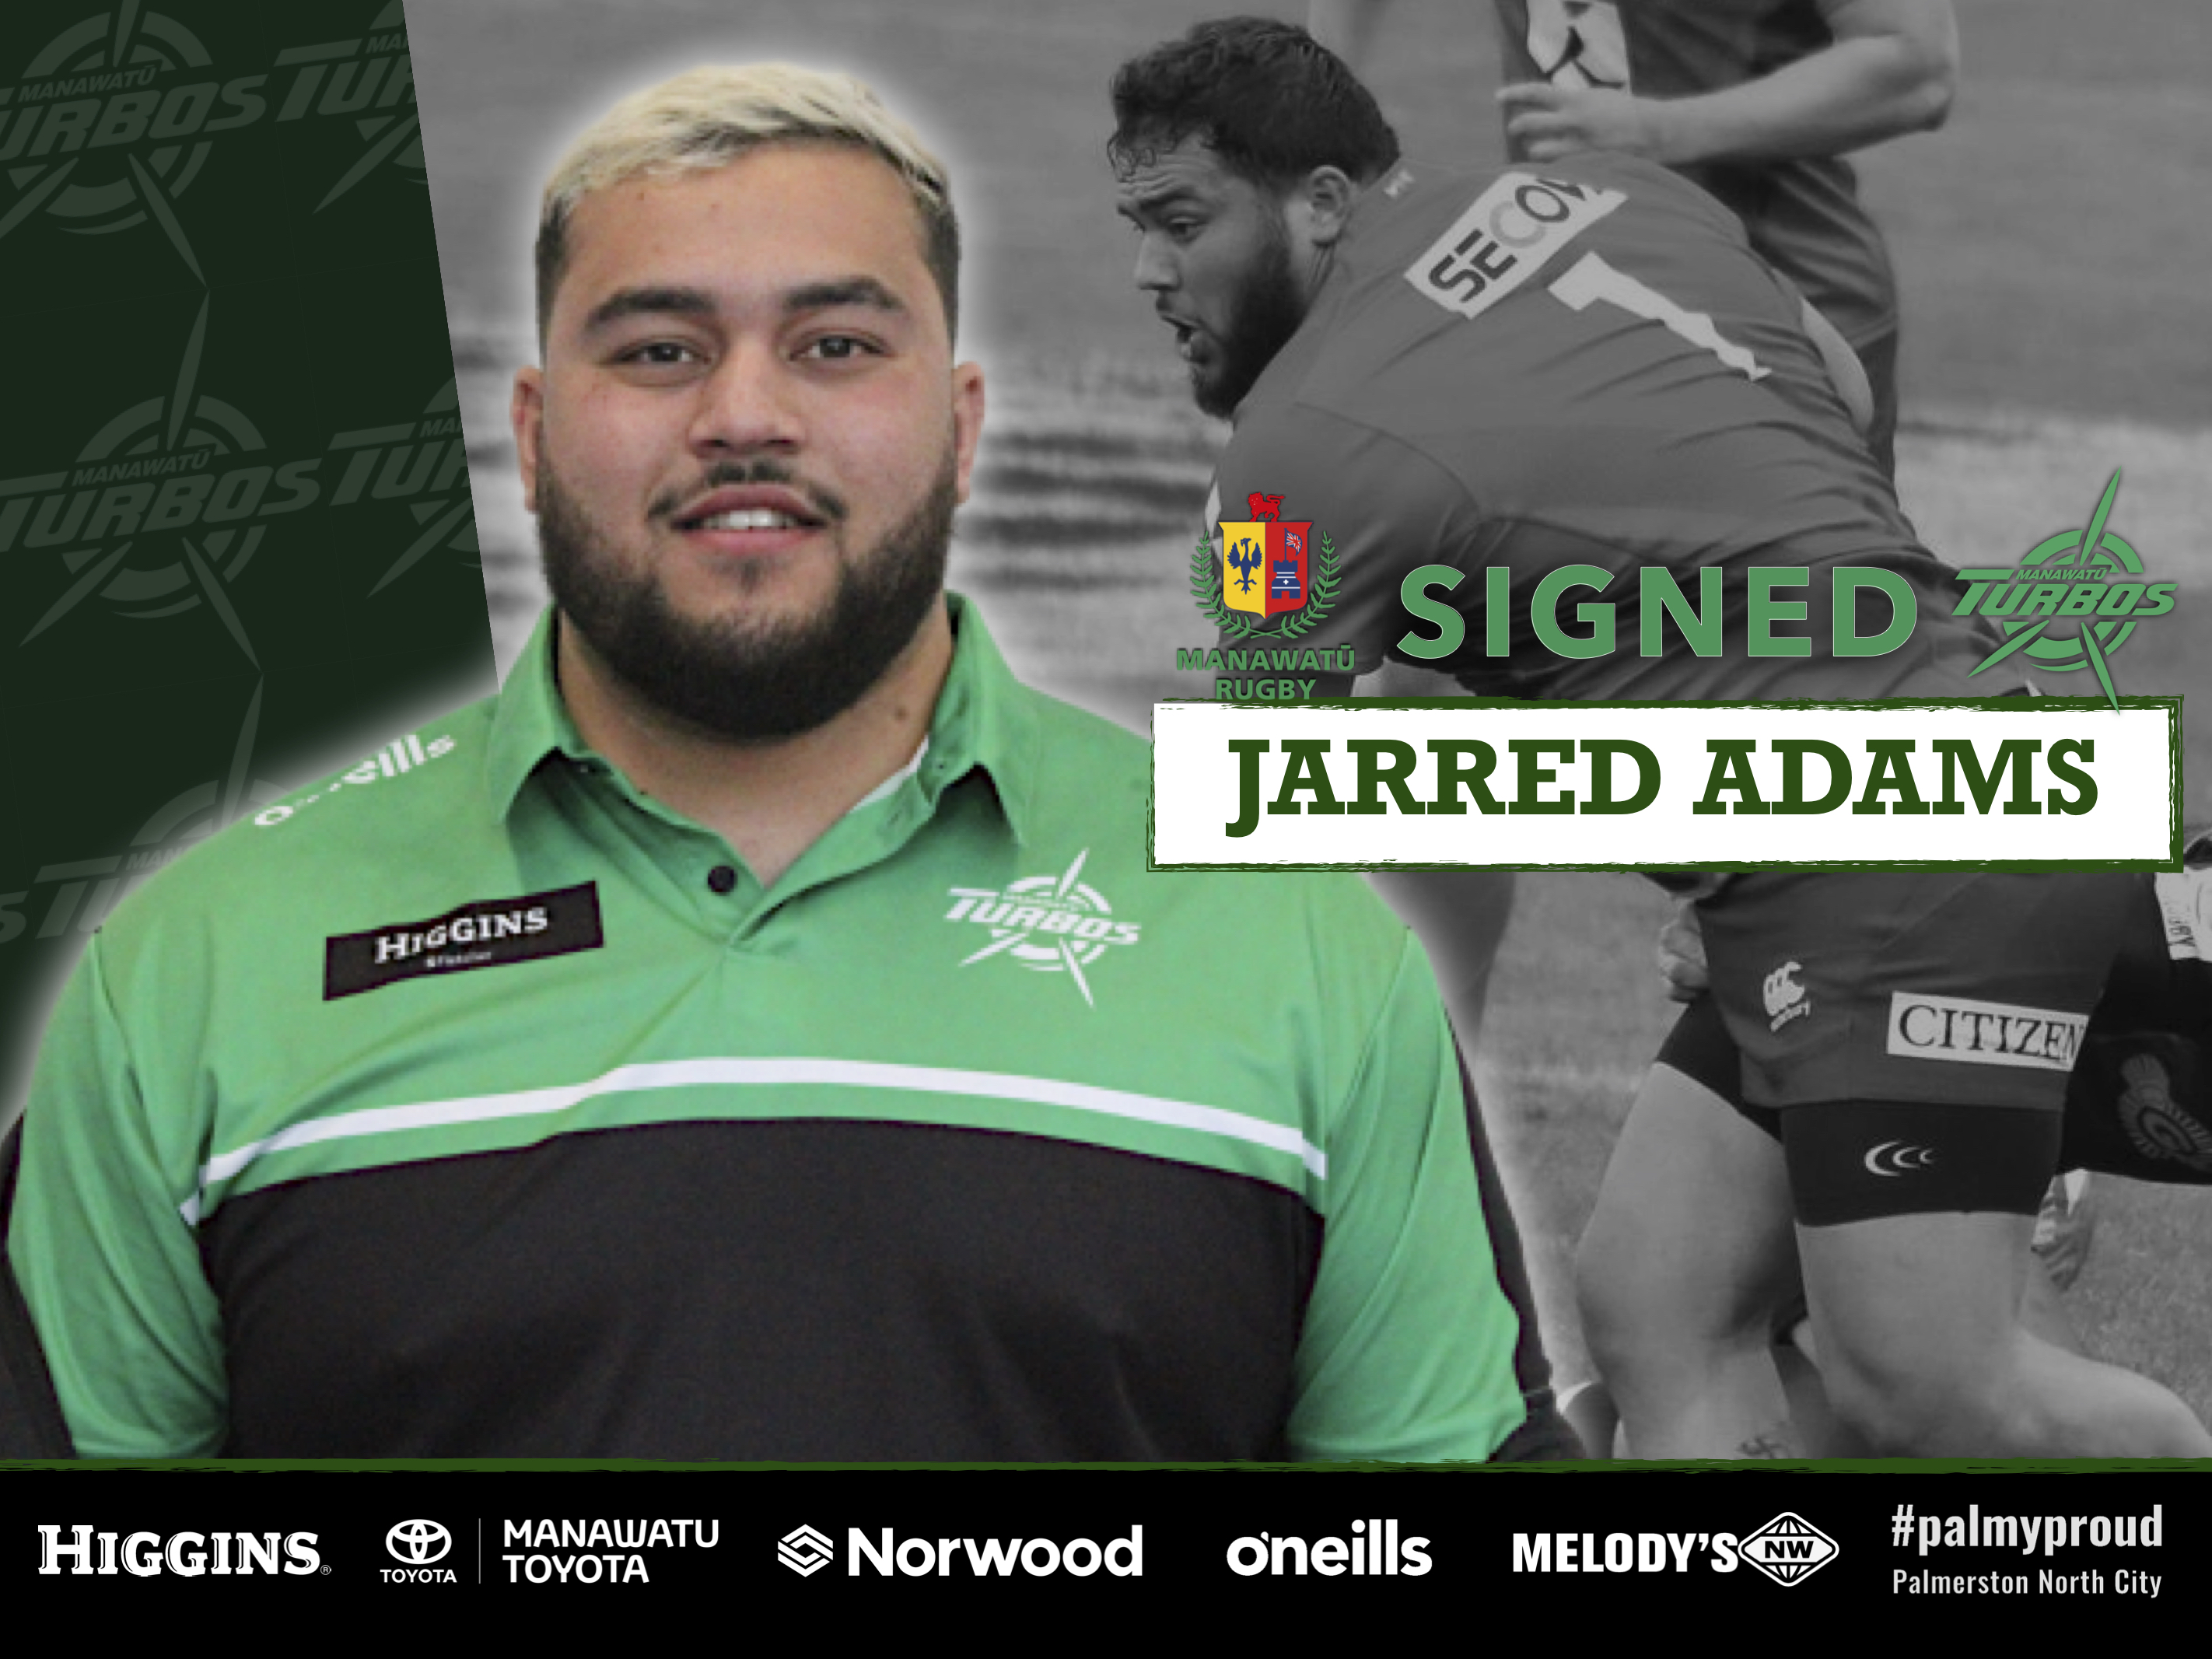 ADAMS SIGNS WITH TURBOS